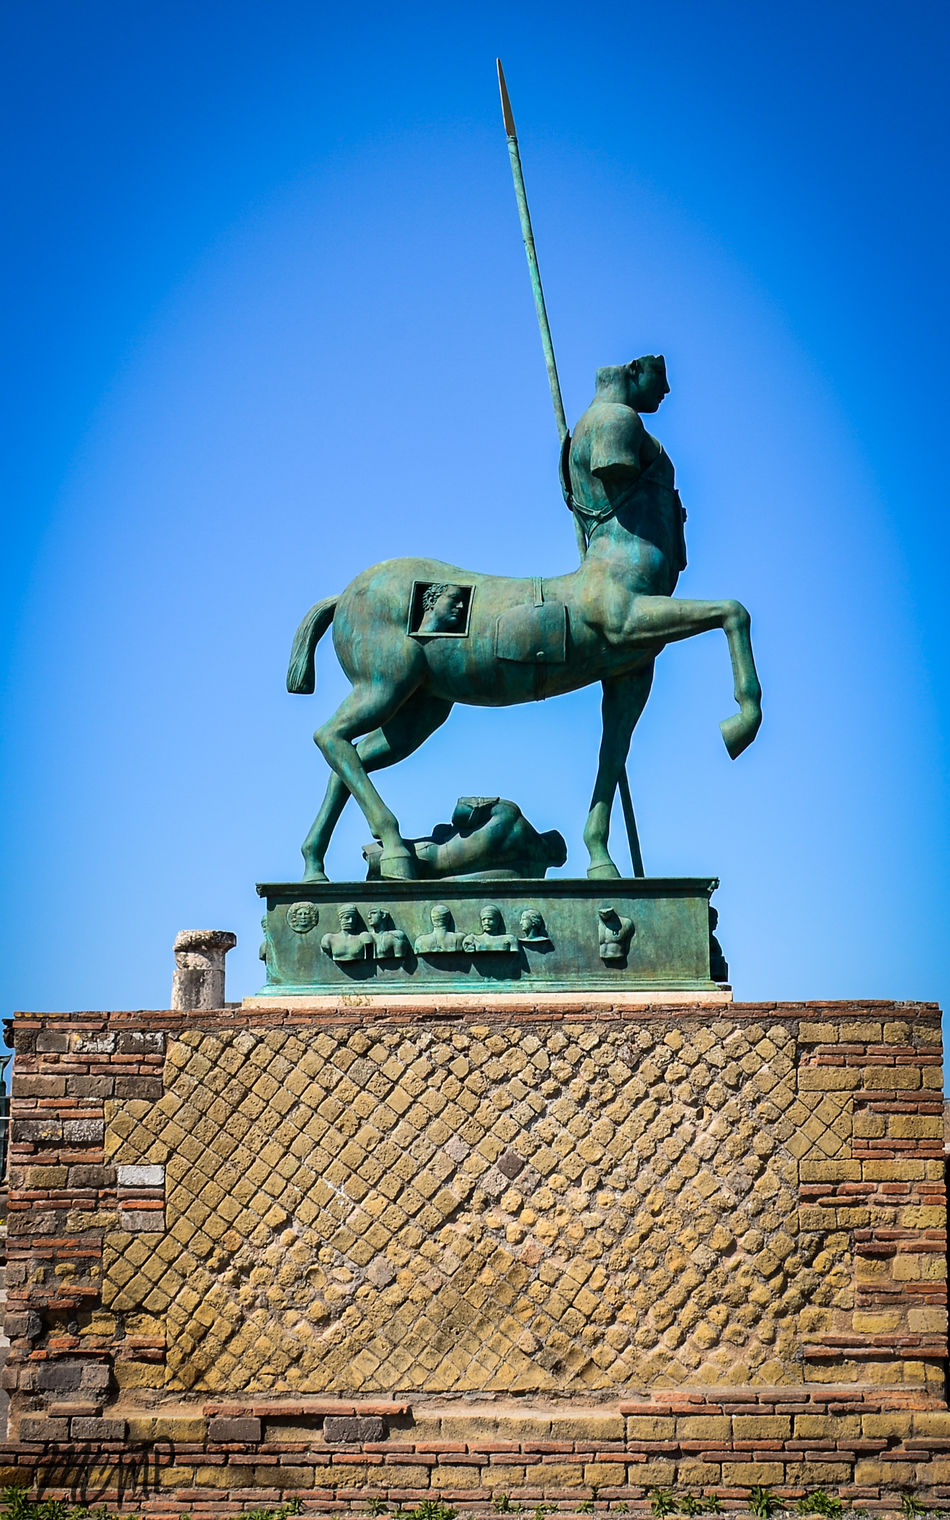 Architecture Art And Craft Blue Building Exterior Built Structure Clear Sky Day Human Representation King - Royal Person Low Angle View Male Likeness No People Outdoors Sculpture Shield Sky Statue Travel Destinations